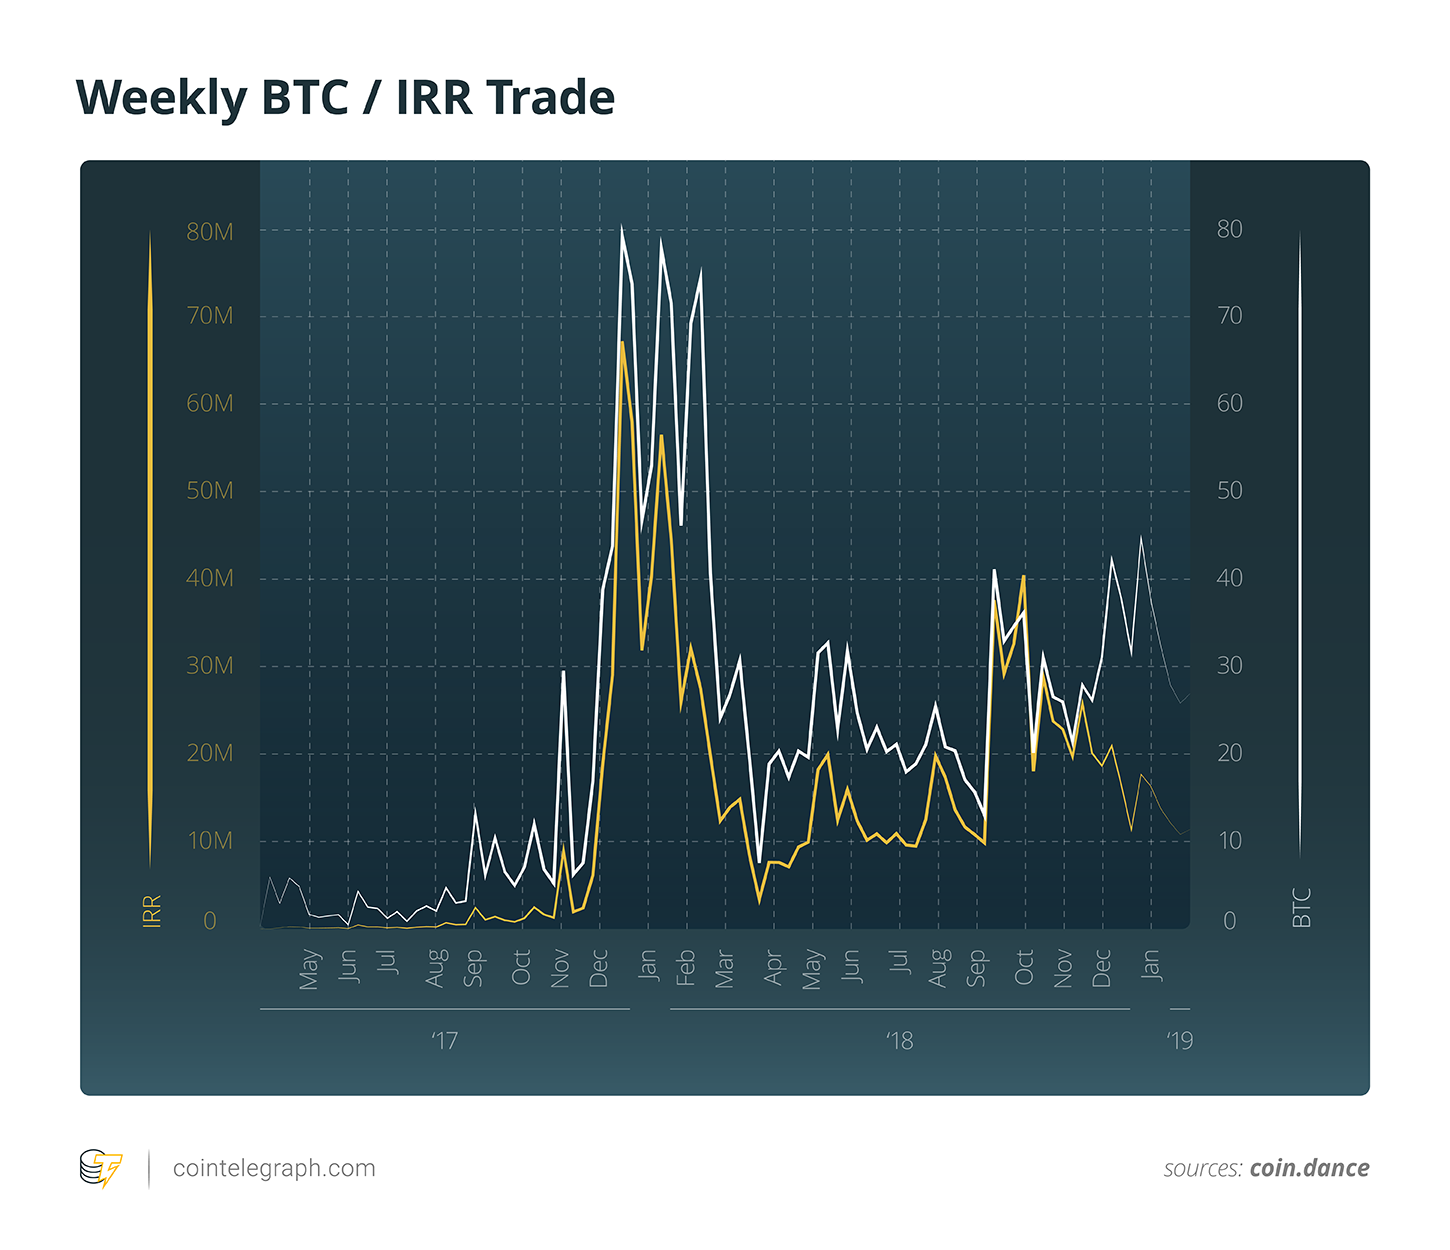 Weekly BTC / IRR Trade